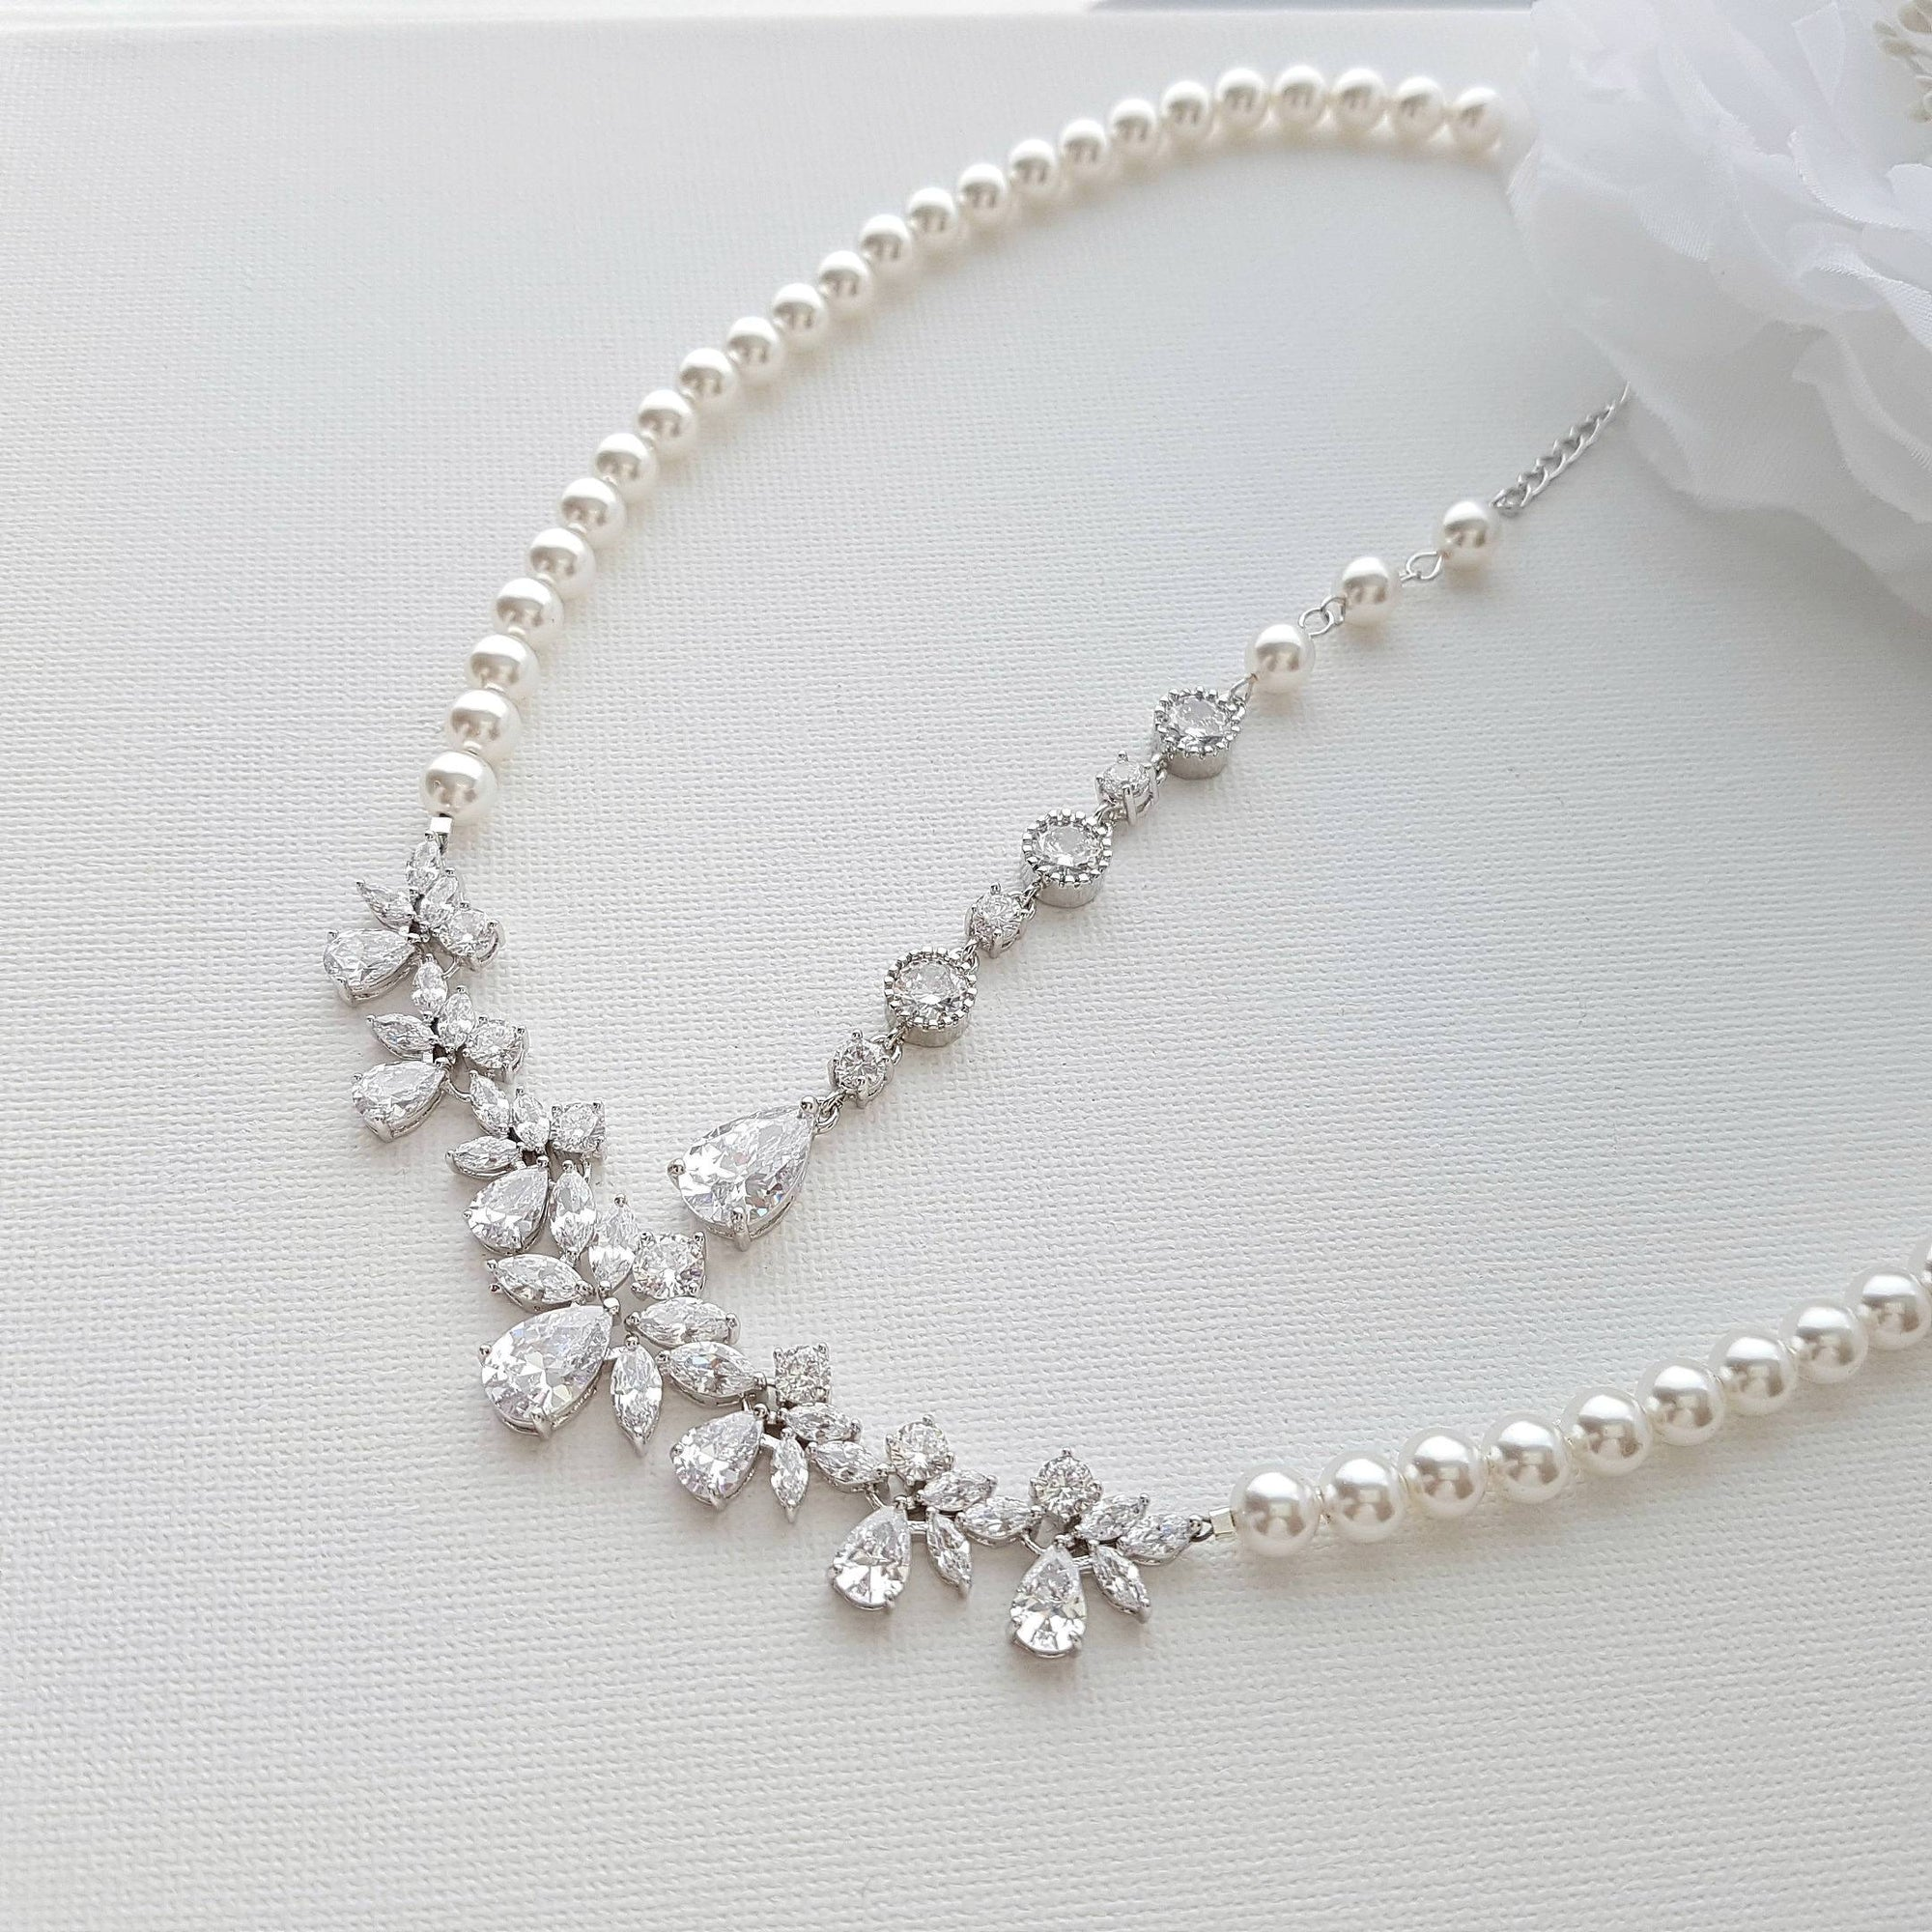 Back bridal necklace crystal and pearl wedding necklace wedding back bridal necklace crystal and pearl wedding necklace wedding back necklace necklace with junglespirit Gallery